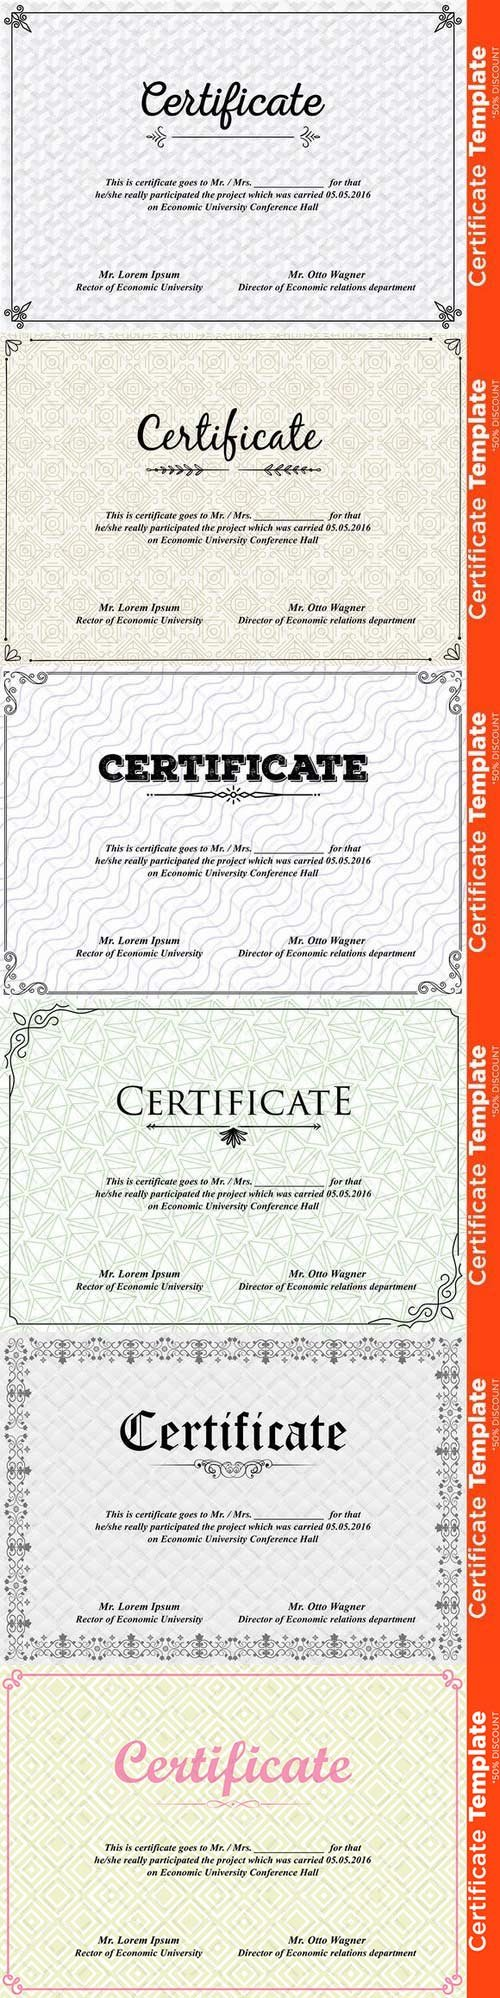 Certificate template psd 677908 certificates and awards certificate template psd 677908 yelopaper Gallery